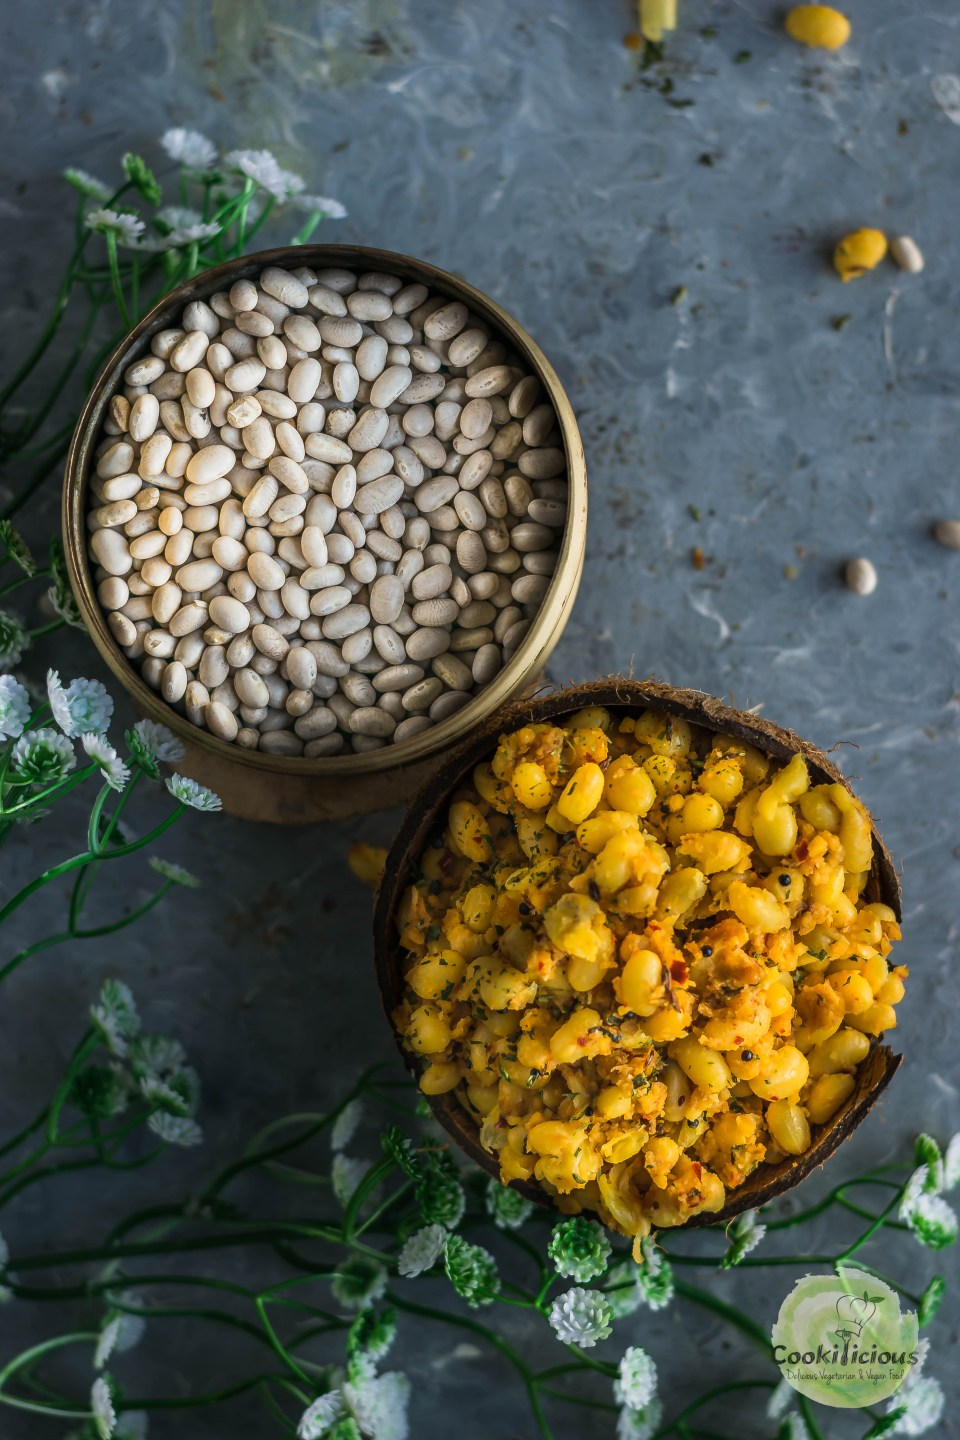 this Asian snack called navy beans sundal (a vegan salad) in a coconut shell besides a bowl of dry navy beans